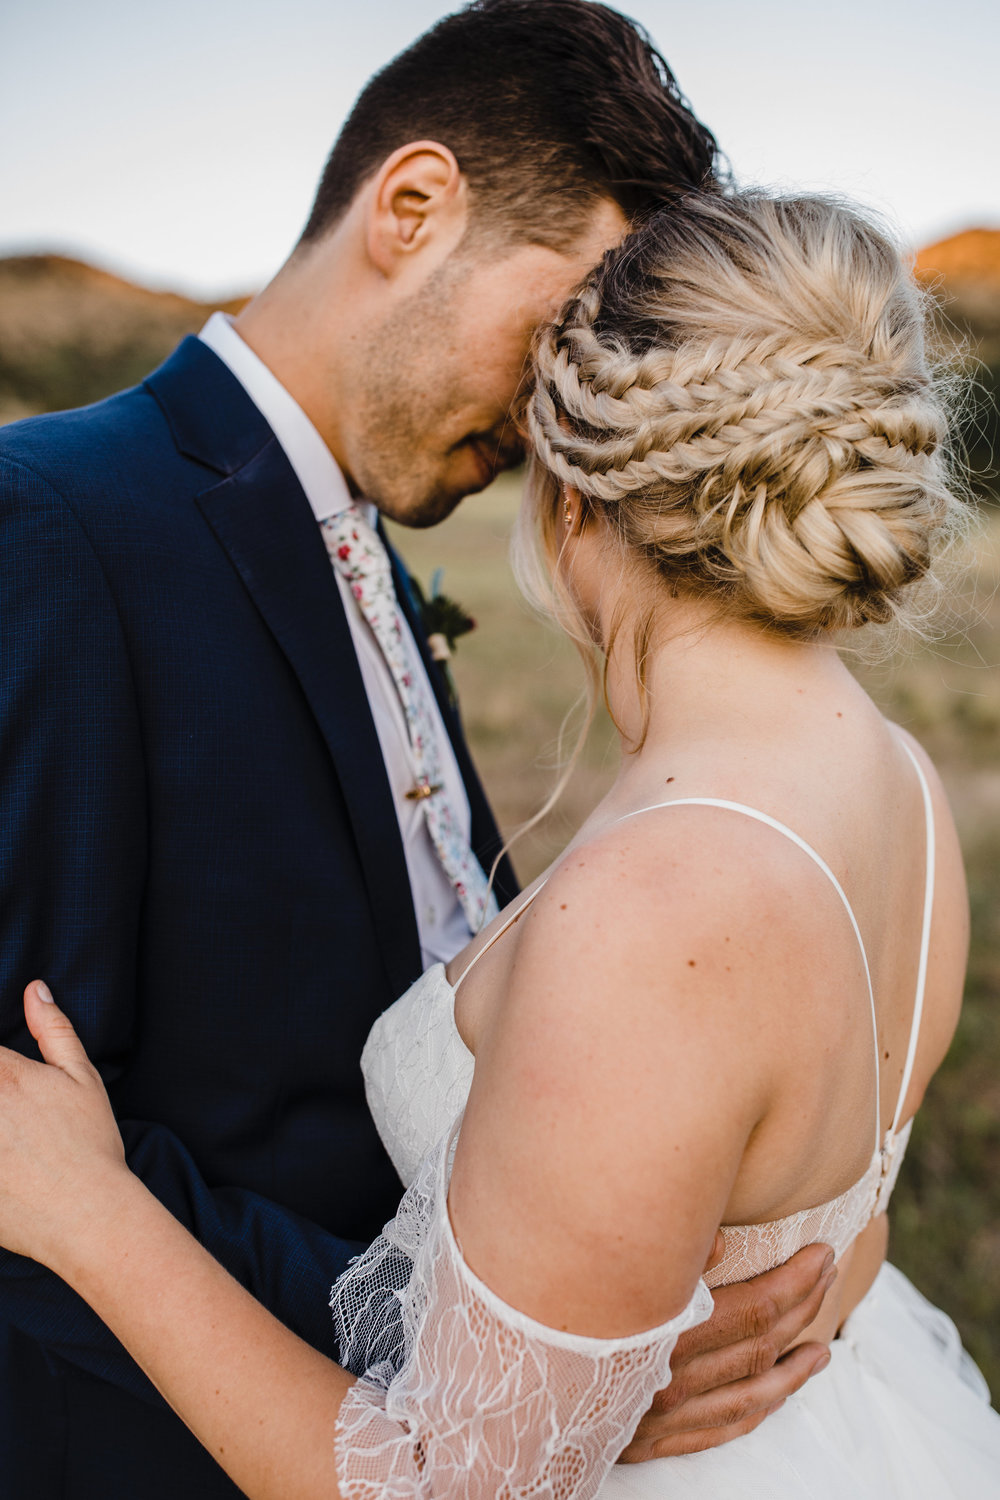 professional wedding photographer logan utah boho wedding braids flutter sleeve wedding dress mountain formals